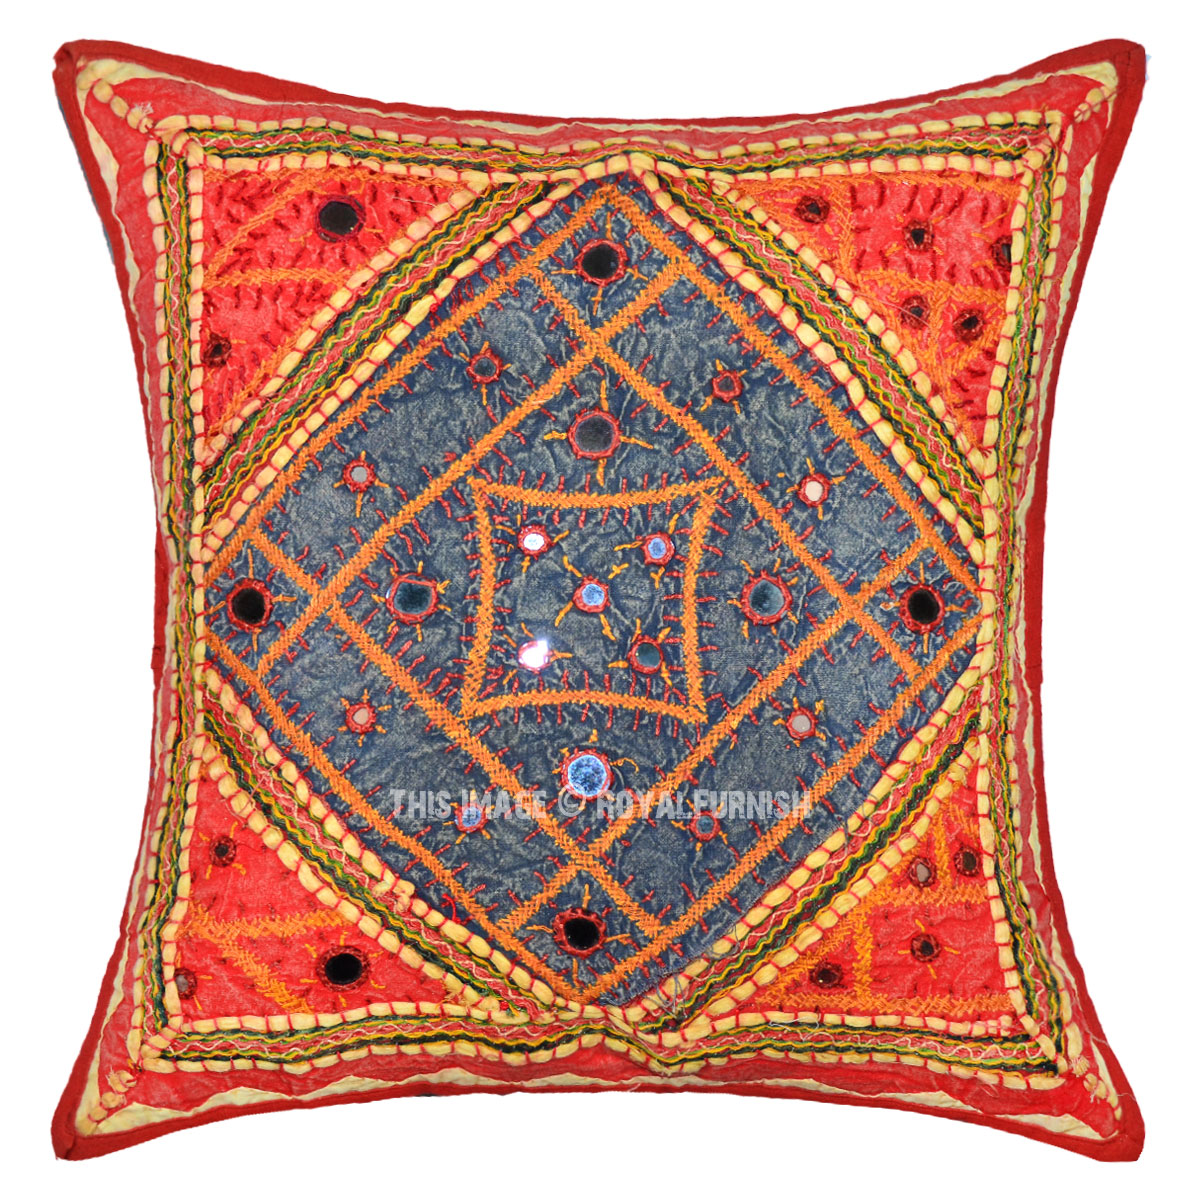 Decorative Pillow Cover Mcqueen Red Multi : 16X16 Red Multi Tribal Unique Hand Embroidered Cotton Throw Pillow Cover - RoyalFurnish.com